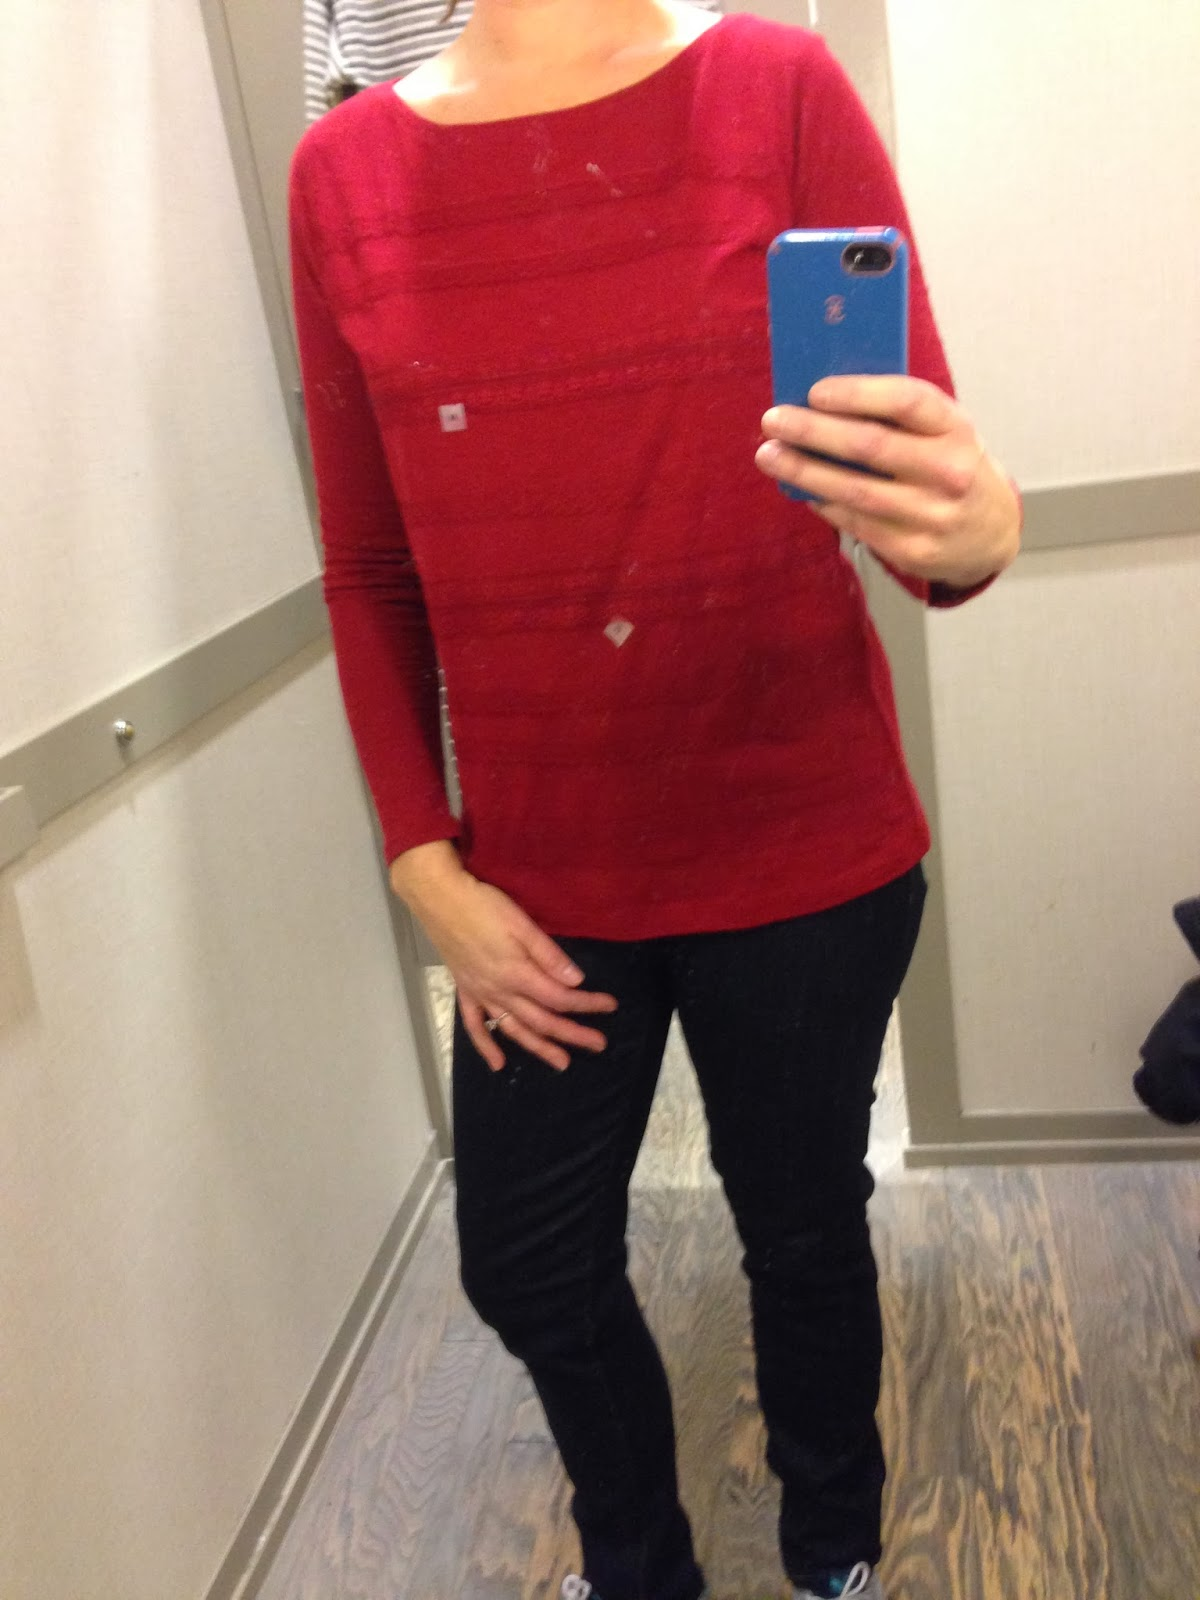 Dressing Room Red Shirt - Flotsam of the Mind